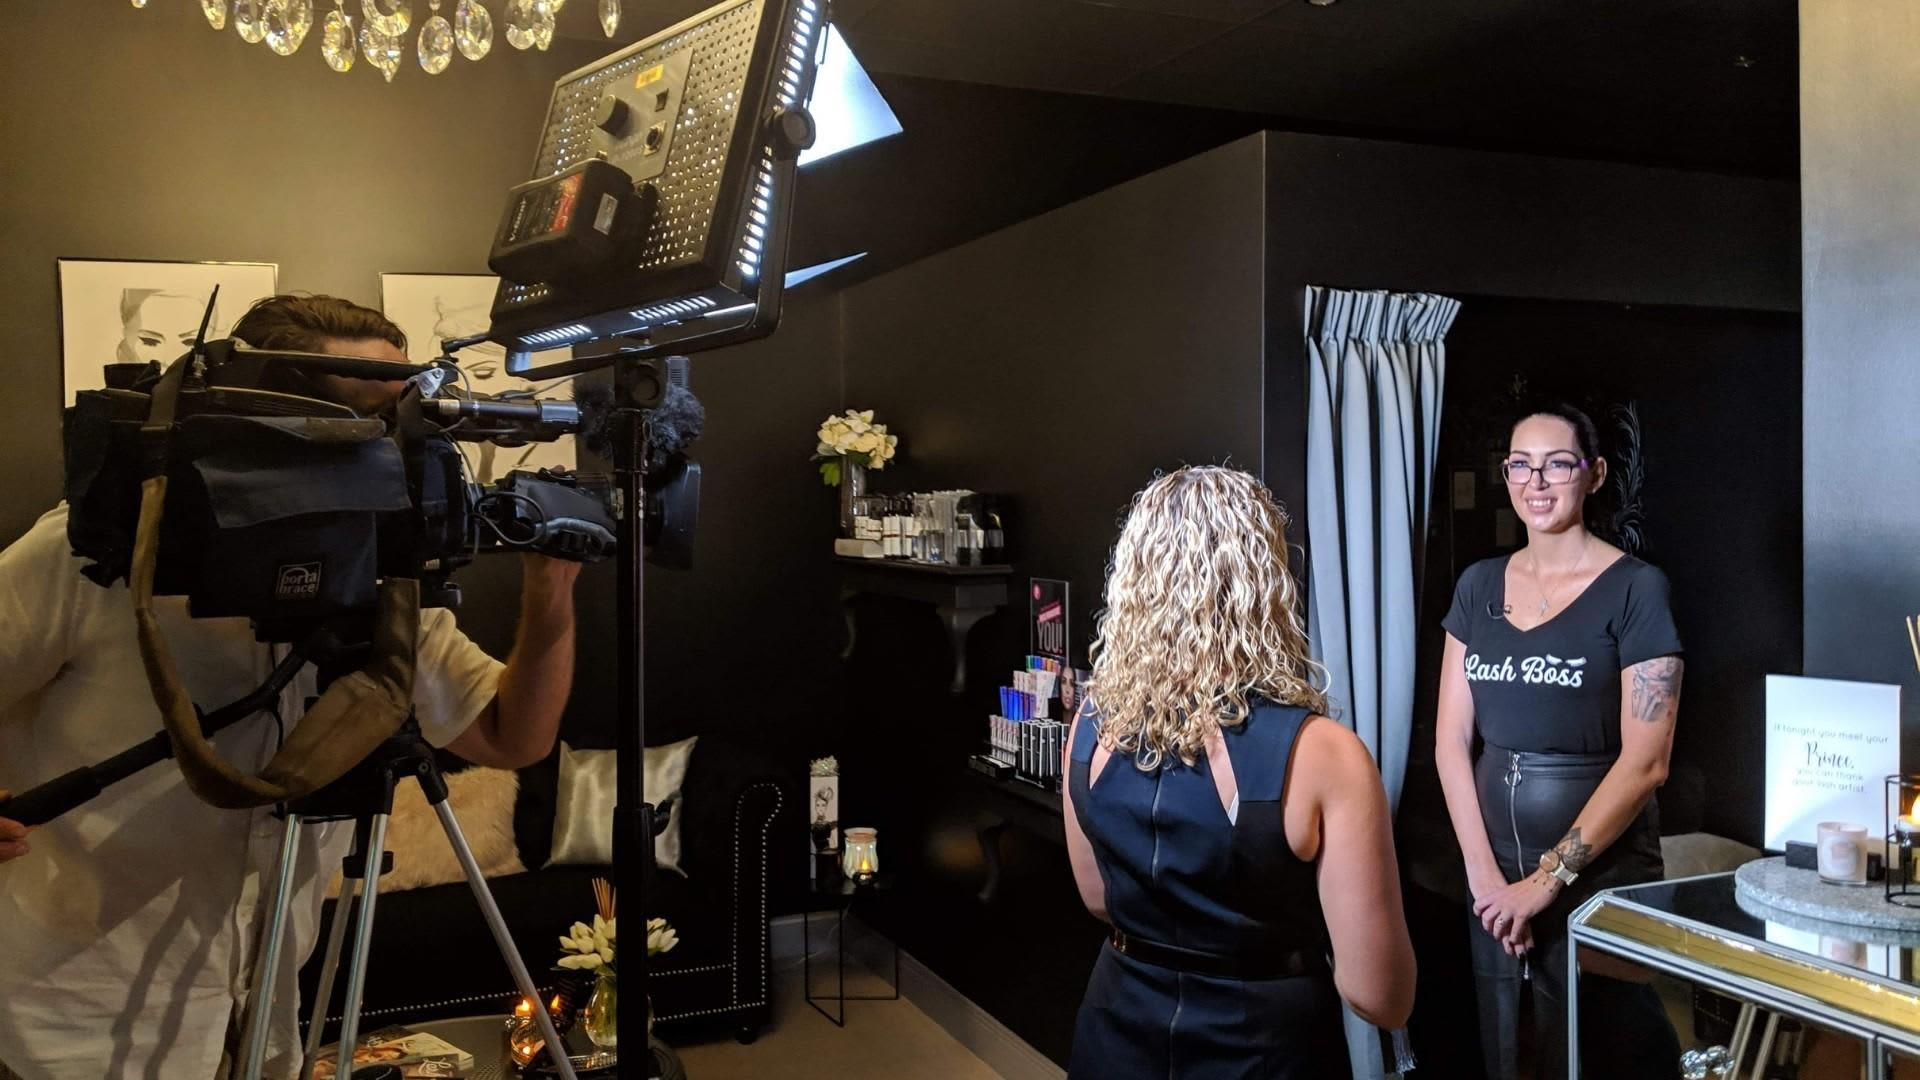 Dee being interviewed by Channel 9 after winning NALA Lash Studio of the Year 2019